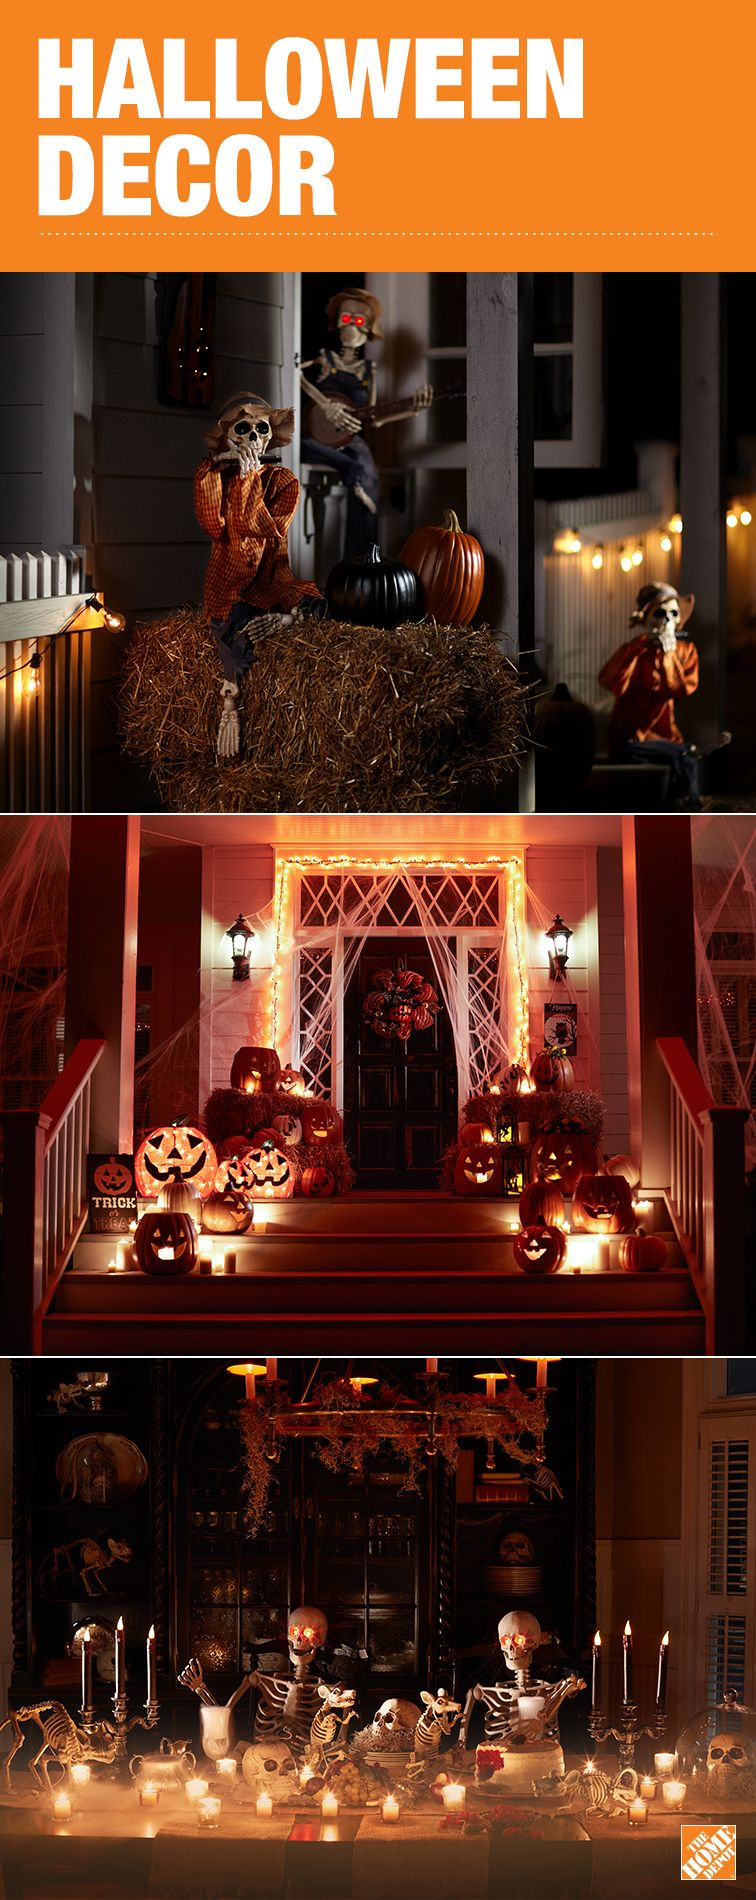 this halloween take your decoration ideas to the next level with an assortment of frightful decorations from the home depot from lights with special